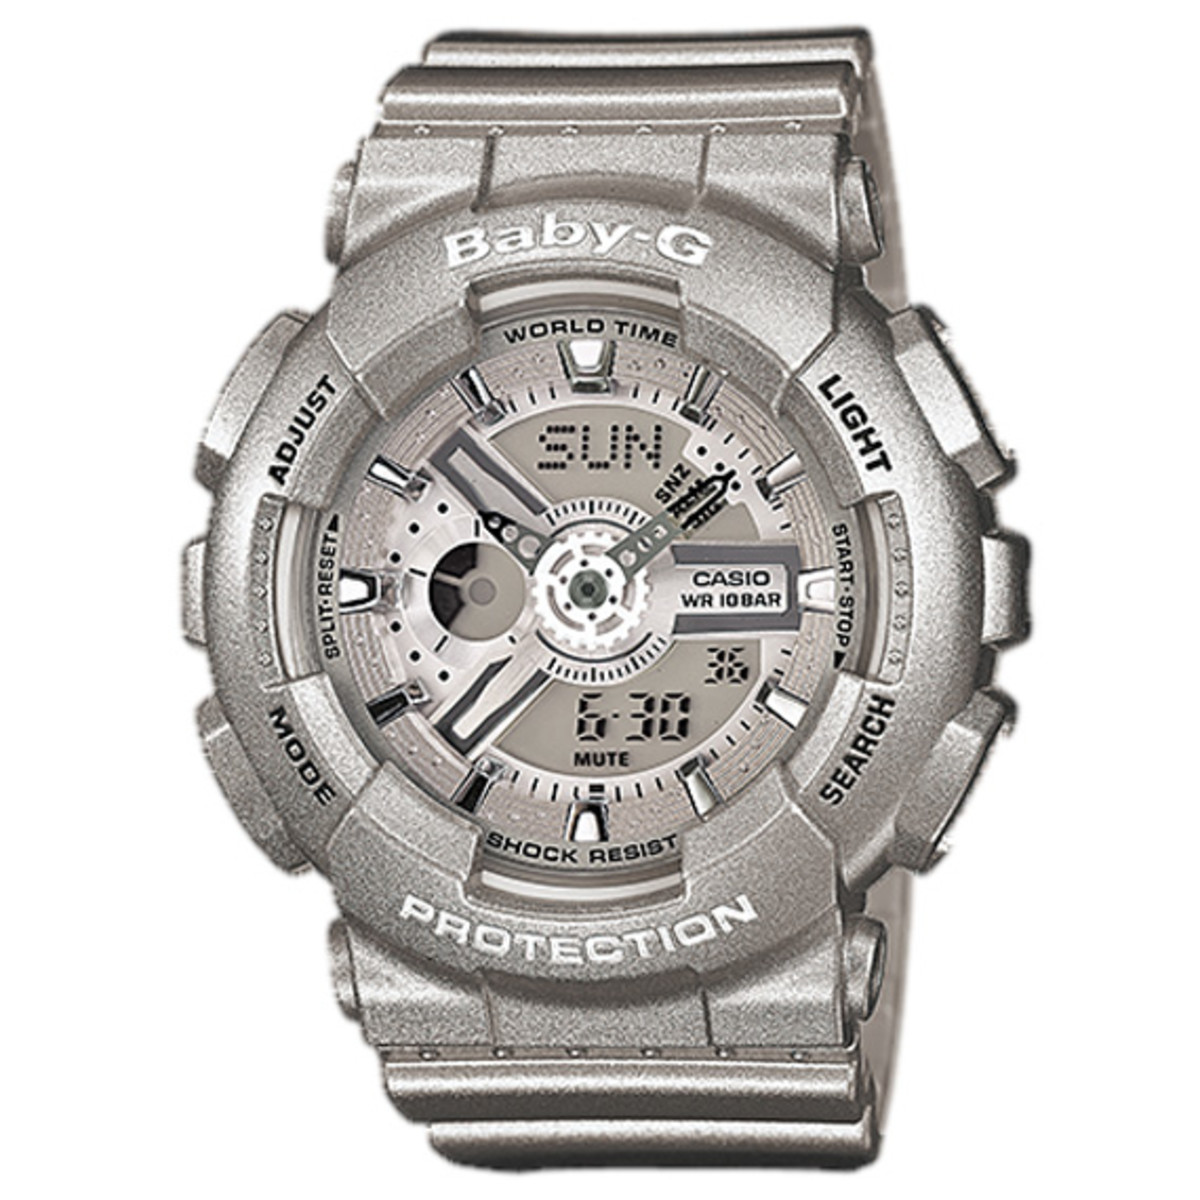 Casio G Shock Ga 110 Baby Ba Matching Collection Freshness Mag 100l 1a 110bc 8ajf Resistant Anti Magneticjis1 Inorganic Glass Mineral 20 Bar 660 Feet Water World Time 48